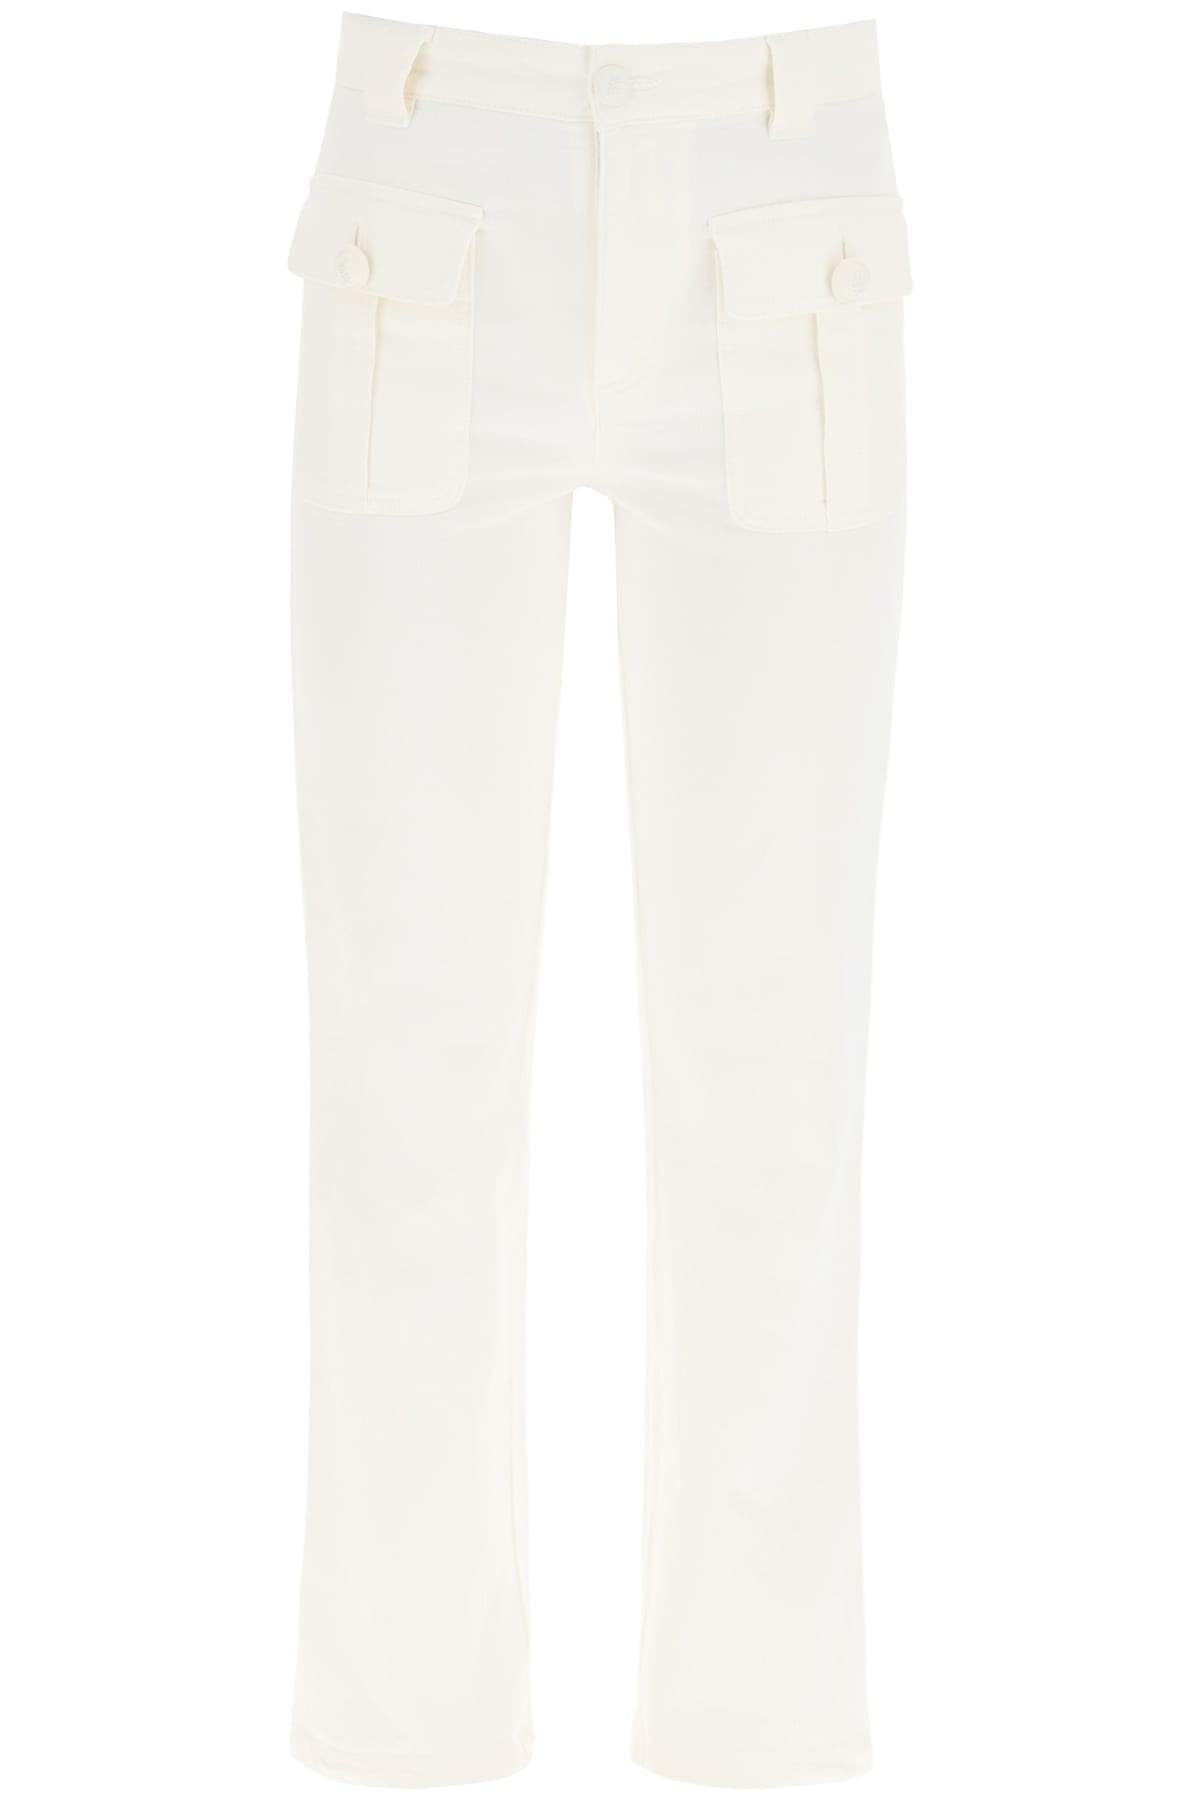 See By Chloé RECYCLED DENIM JEANS